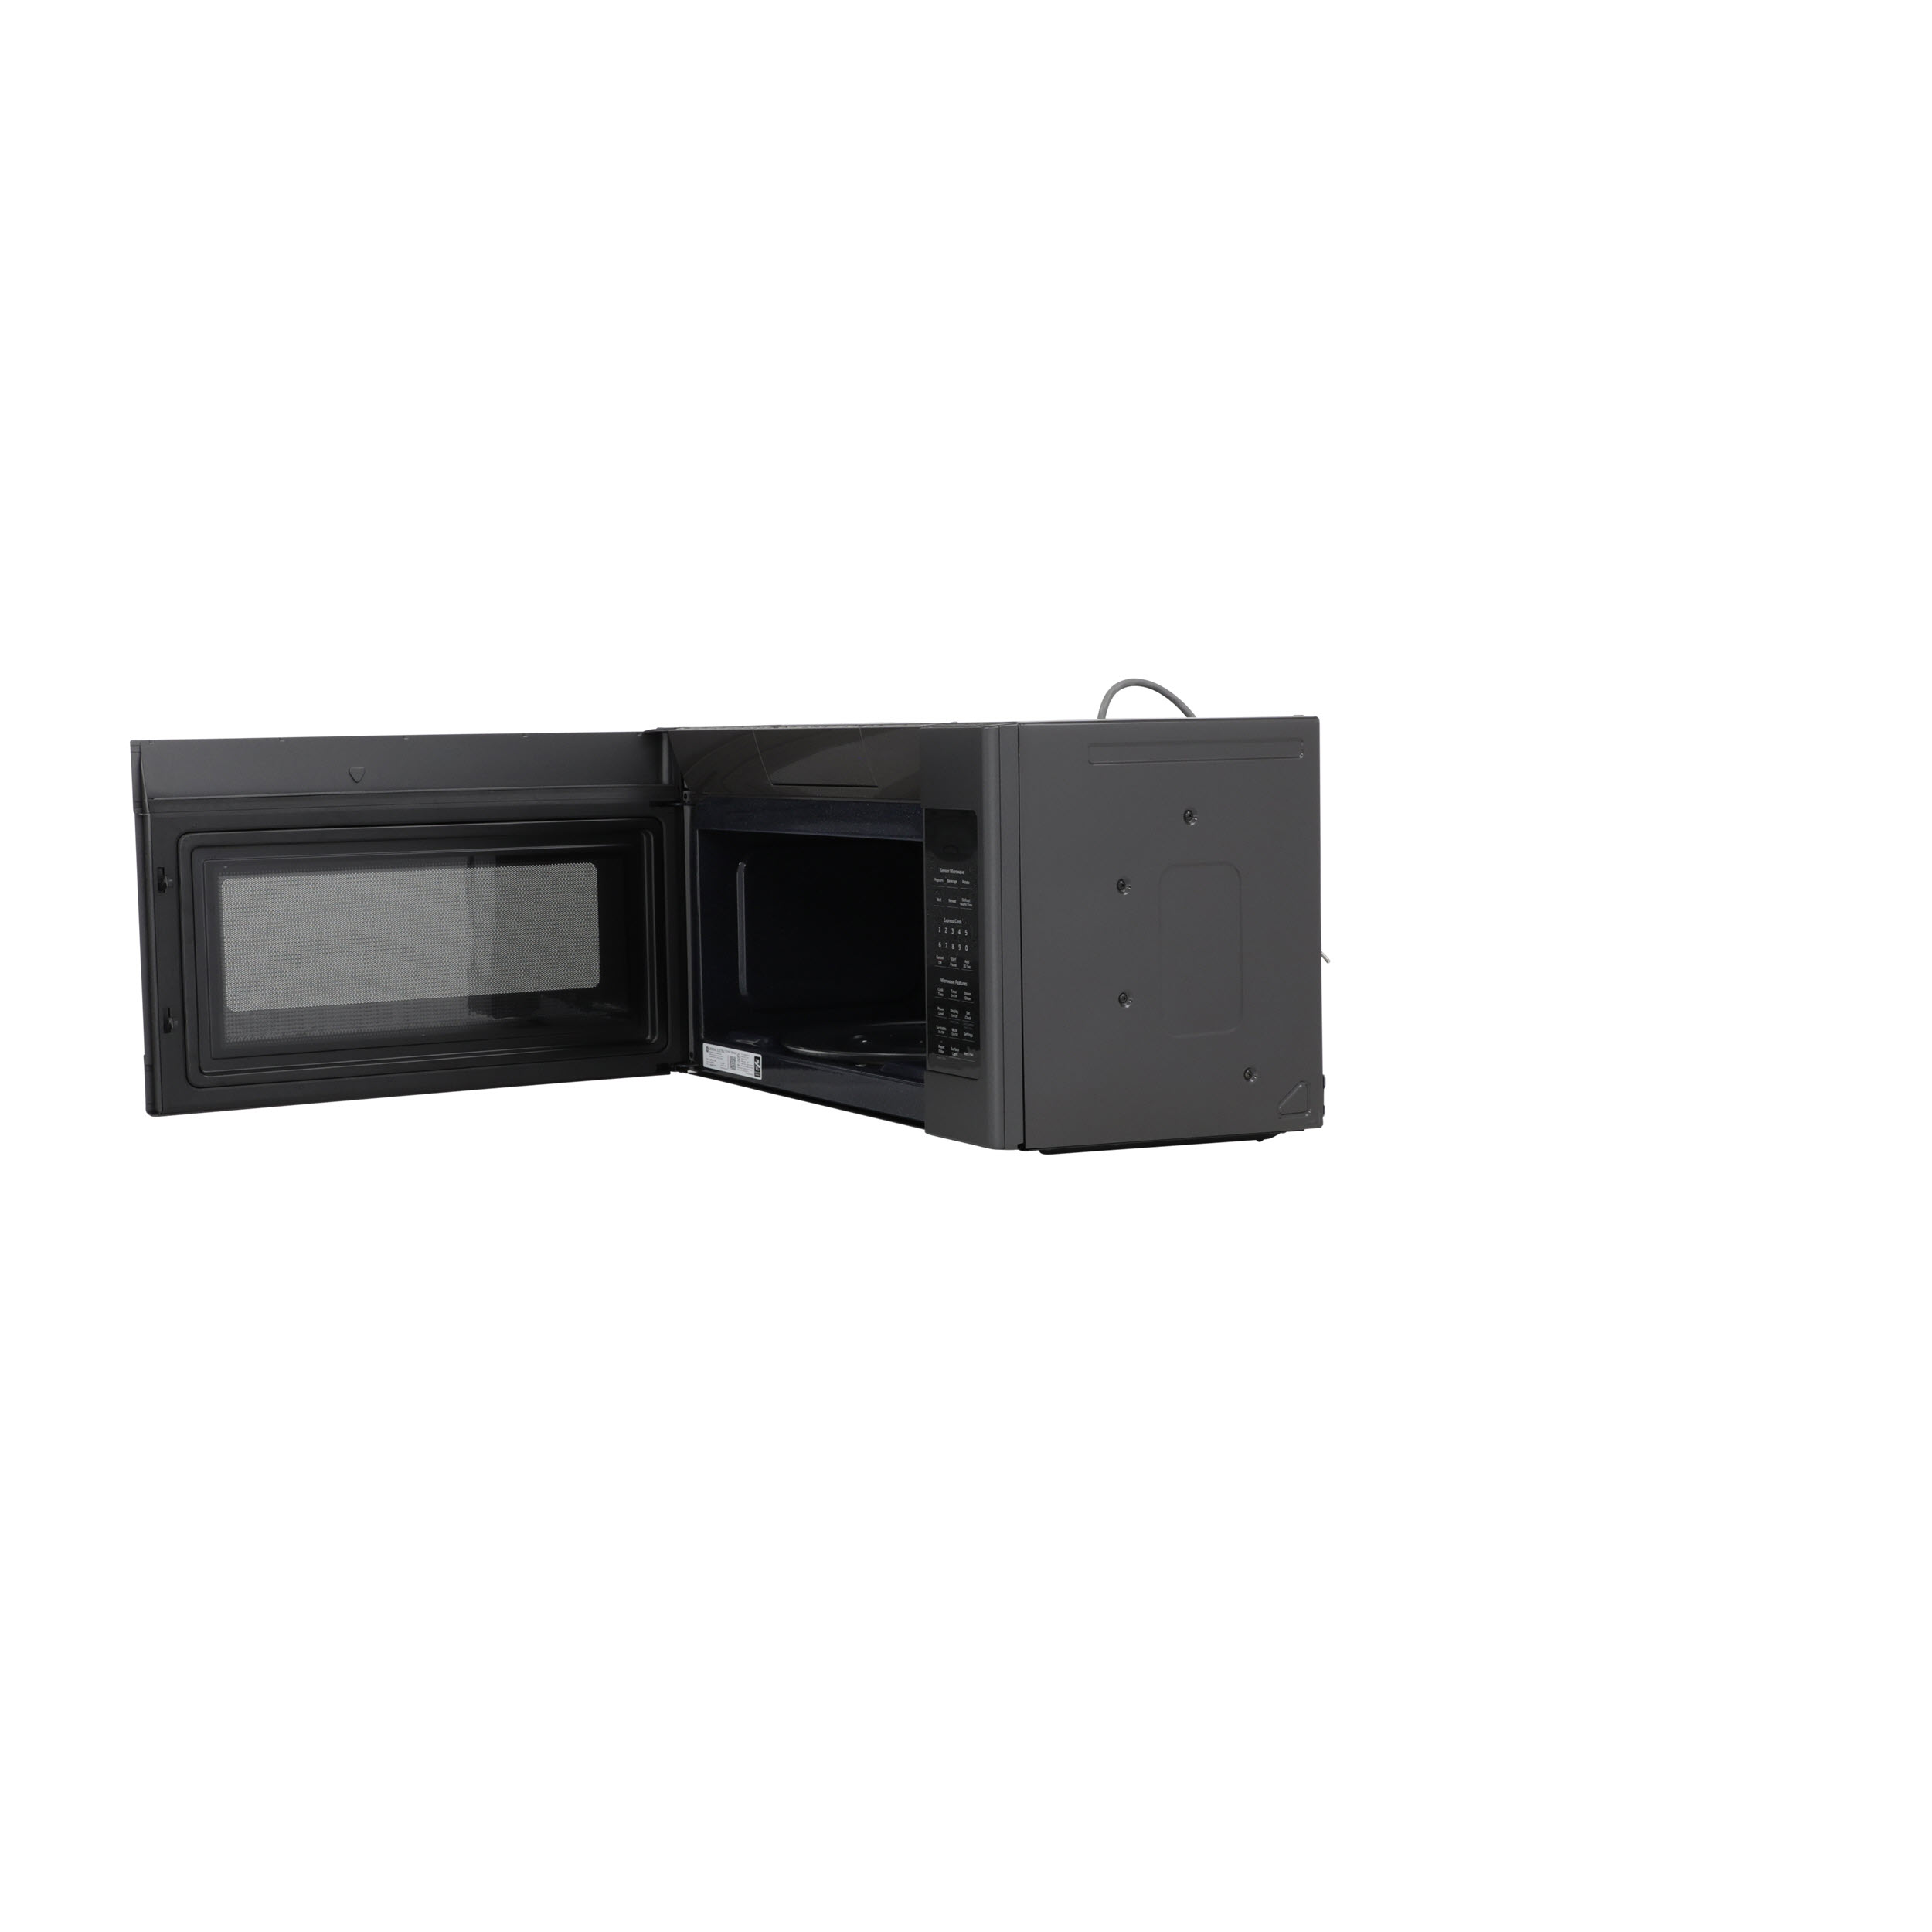 Model: JVM7195FLDS | GE GE® 1.9 Cu. Ft. Over-the-Range Sensor Microwave Oven